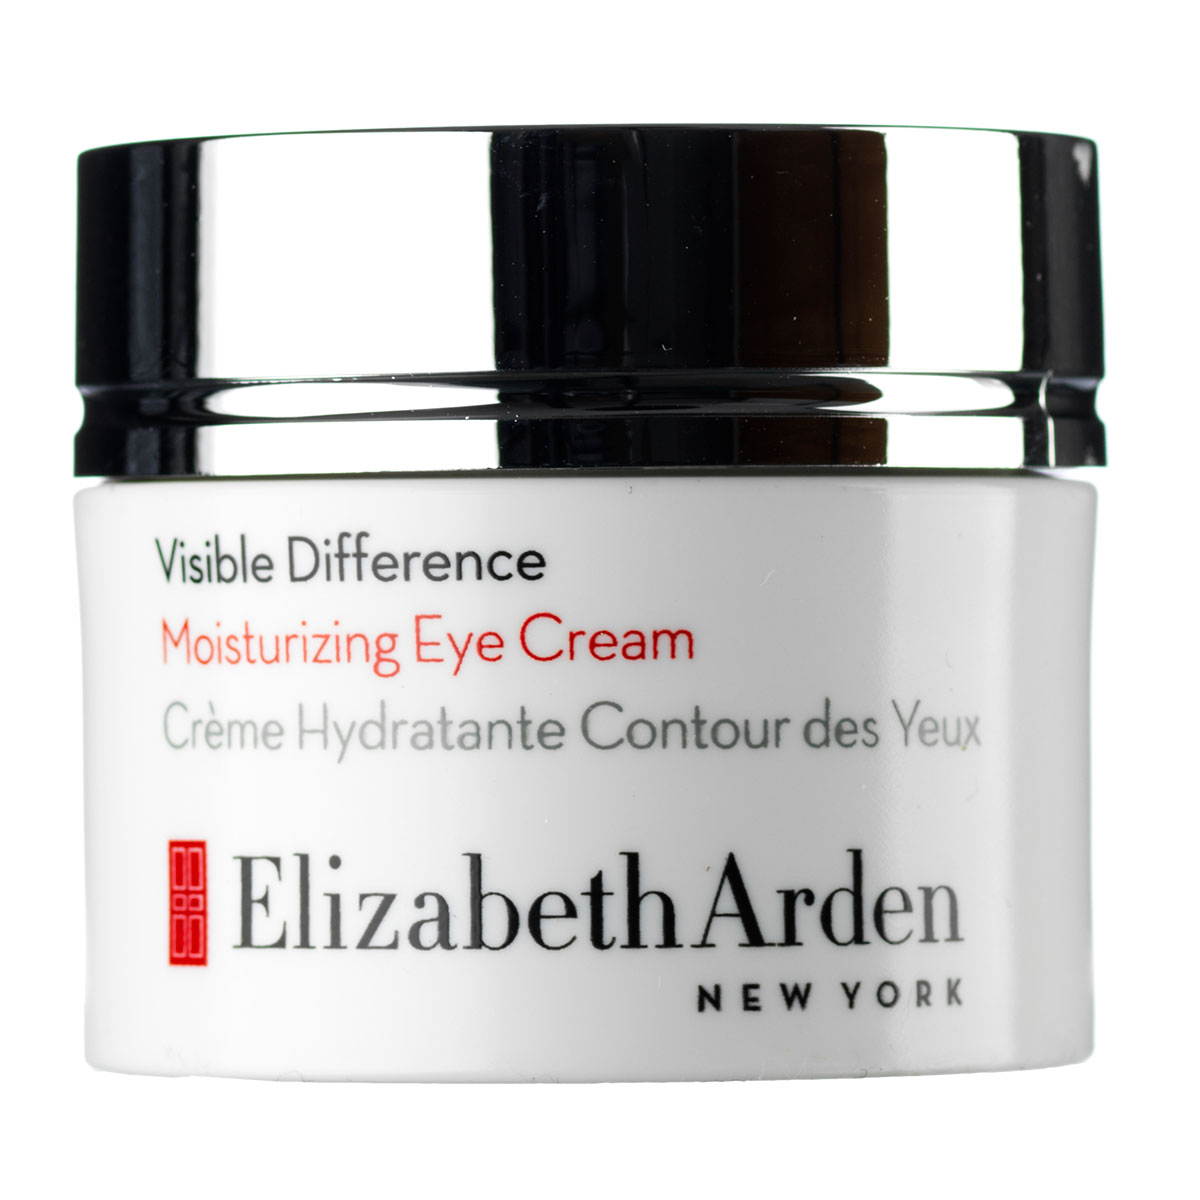 Elizabeth Arden Visible Difference Moisturizing Eye Cream - 15 ml